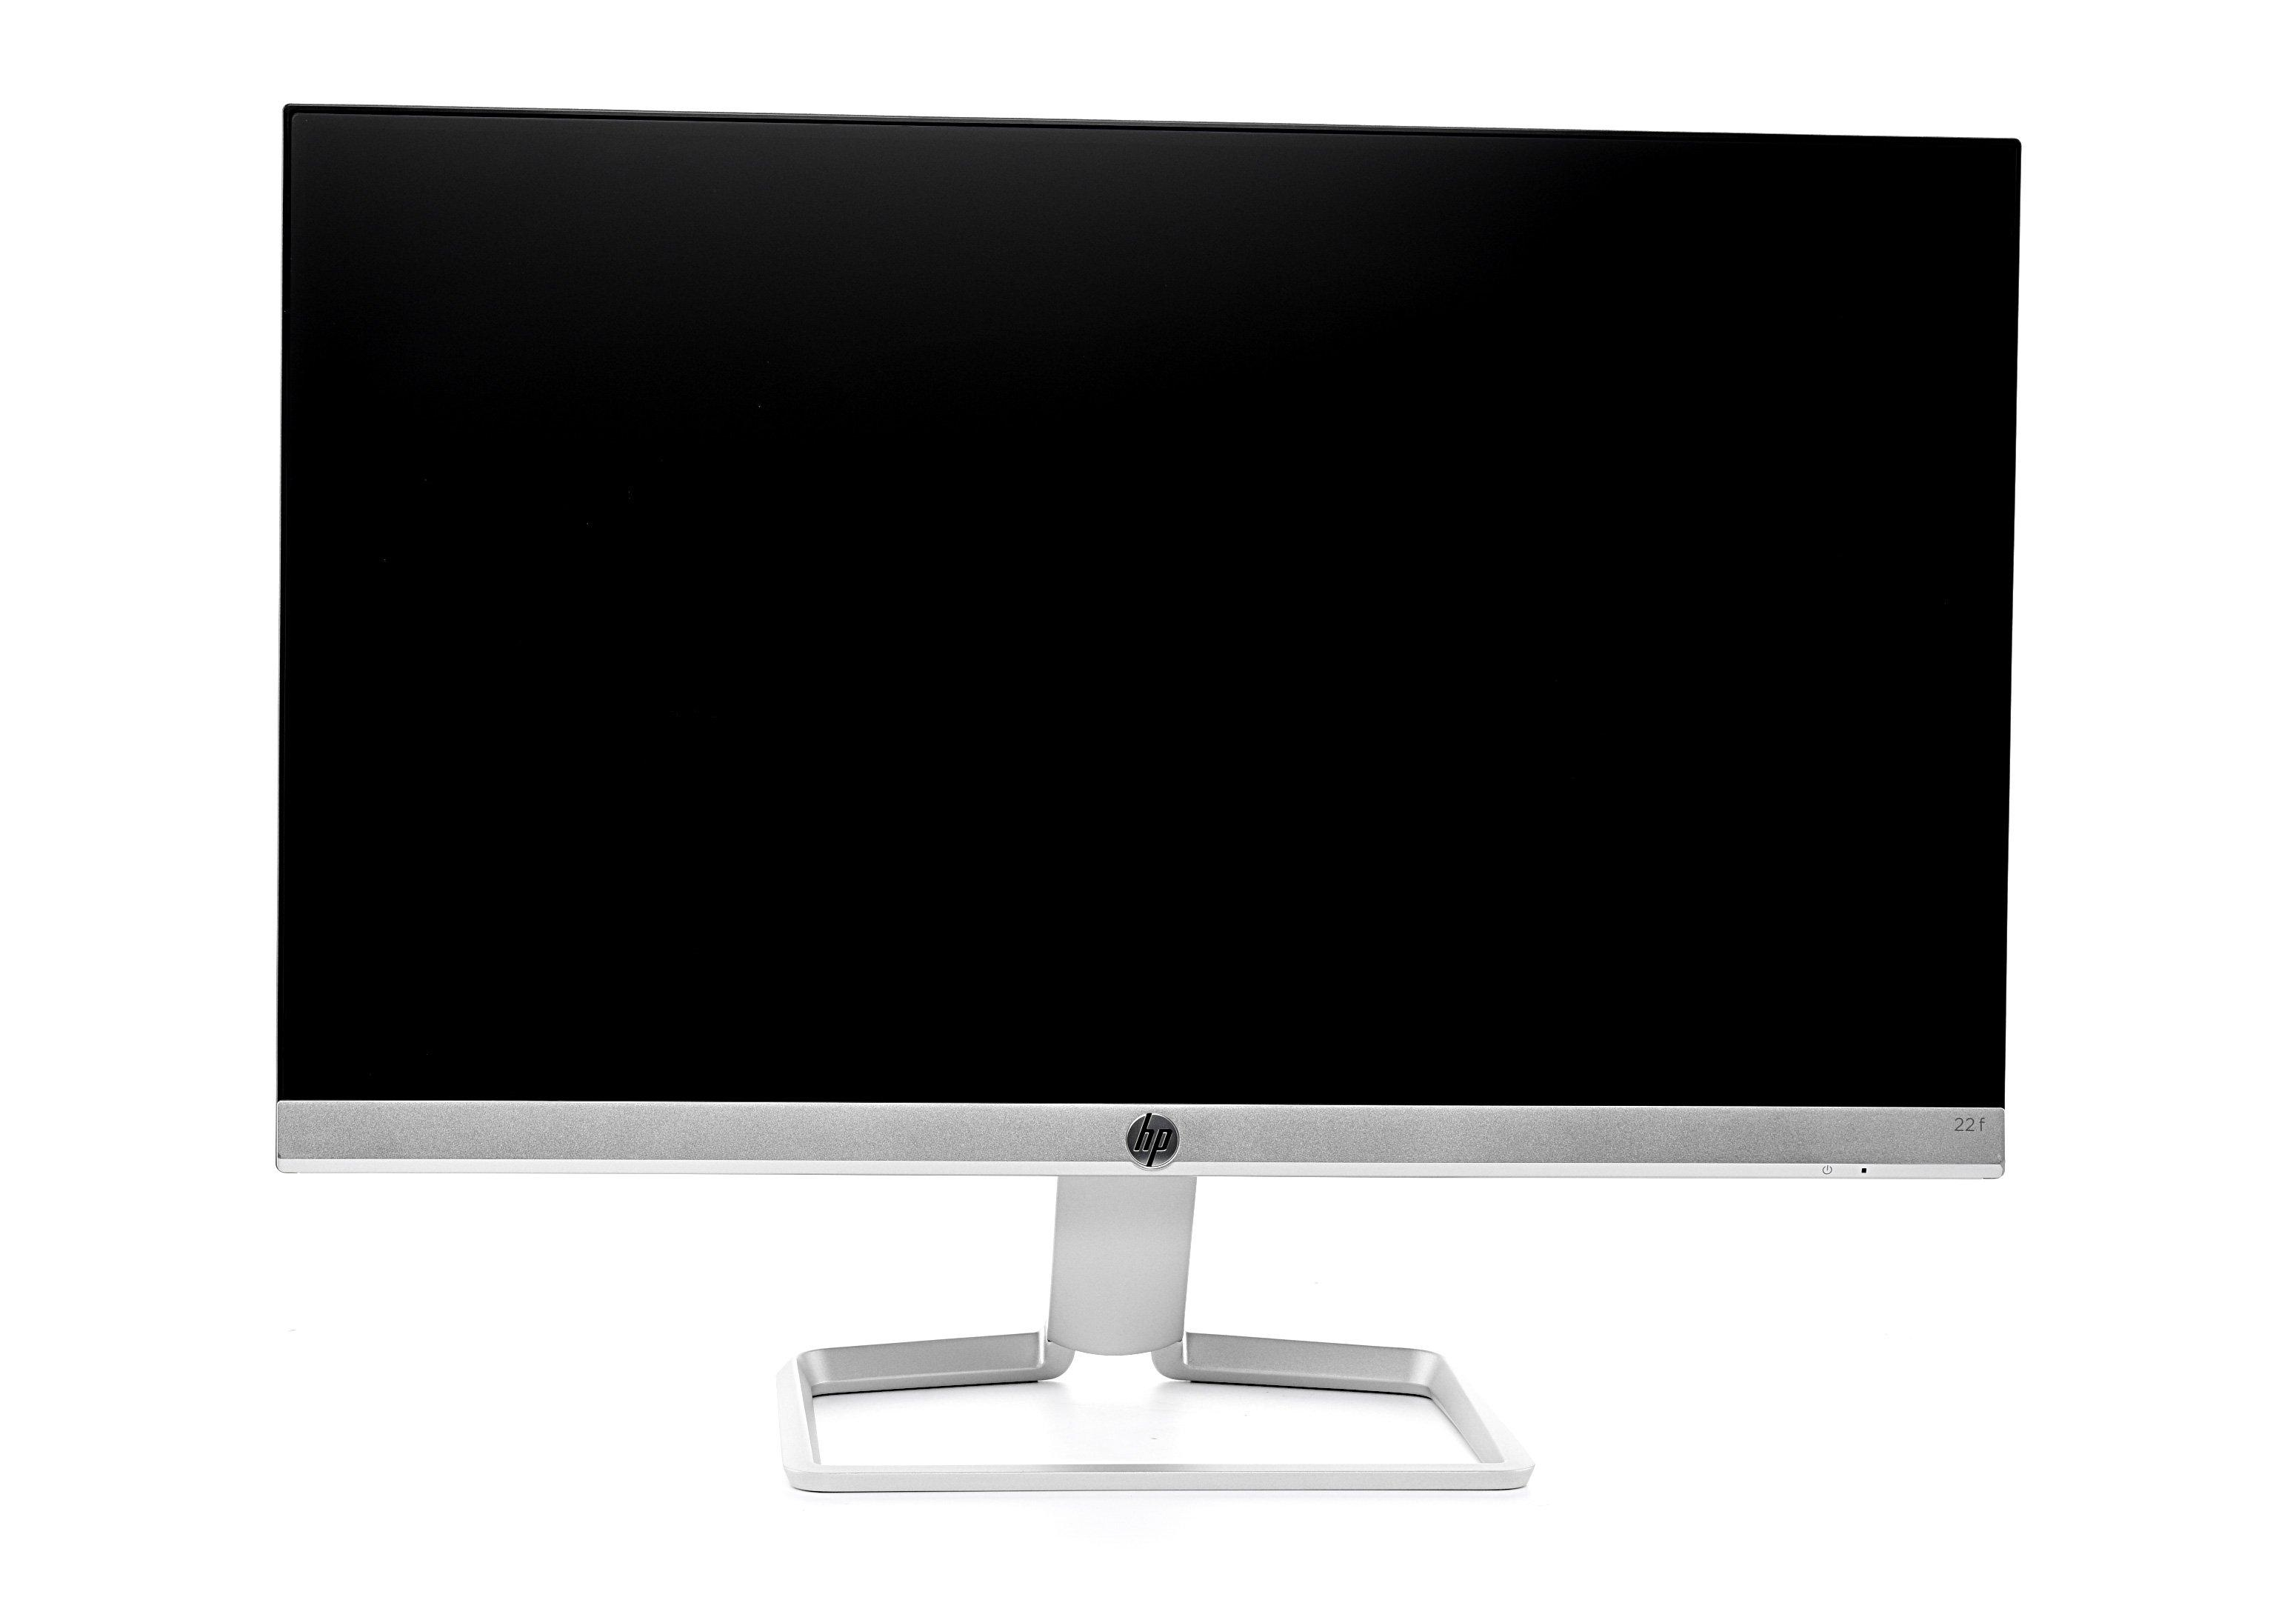 HP 9f FHD Monitor 9XN9AA/AS 91.9 inch, IPS with LED backlight,  Black/Silver